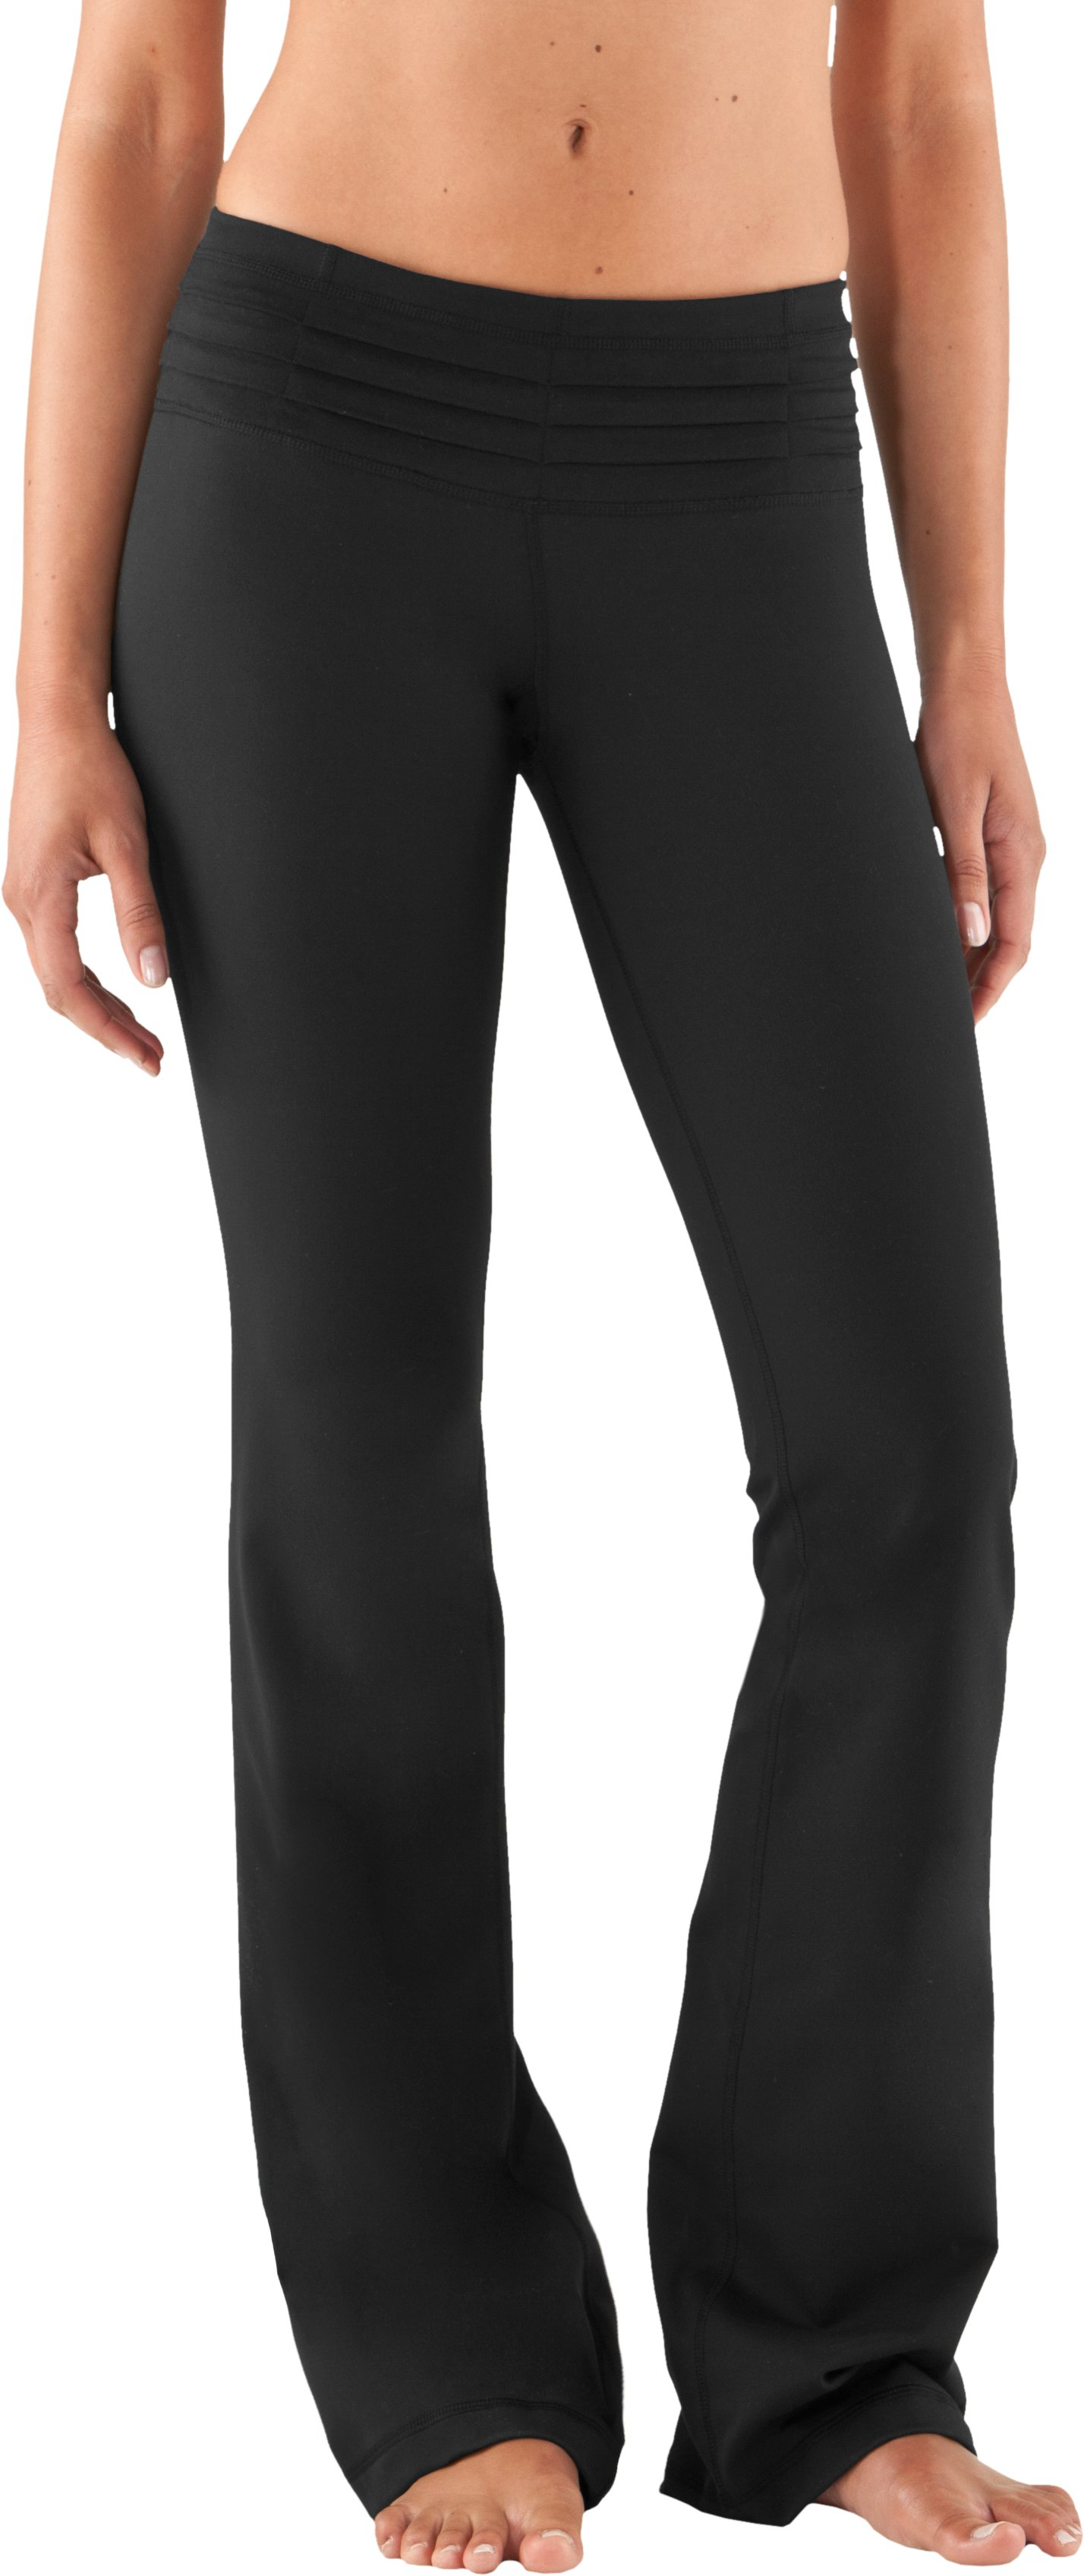 "Women's 31.5"" UA Quattro Pant - Short, Black"